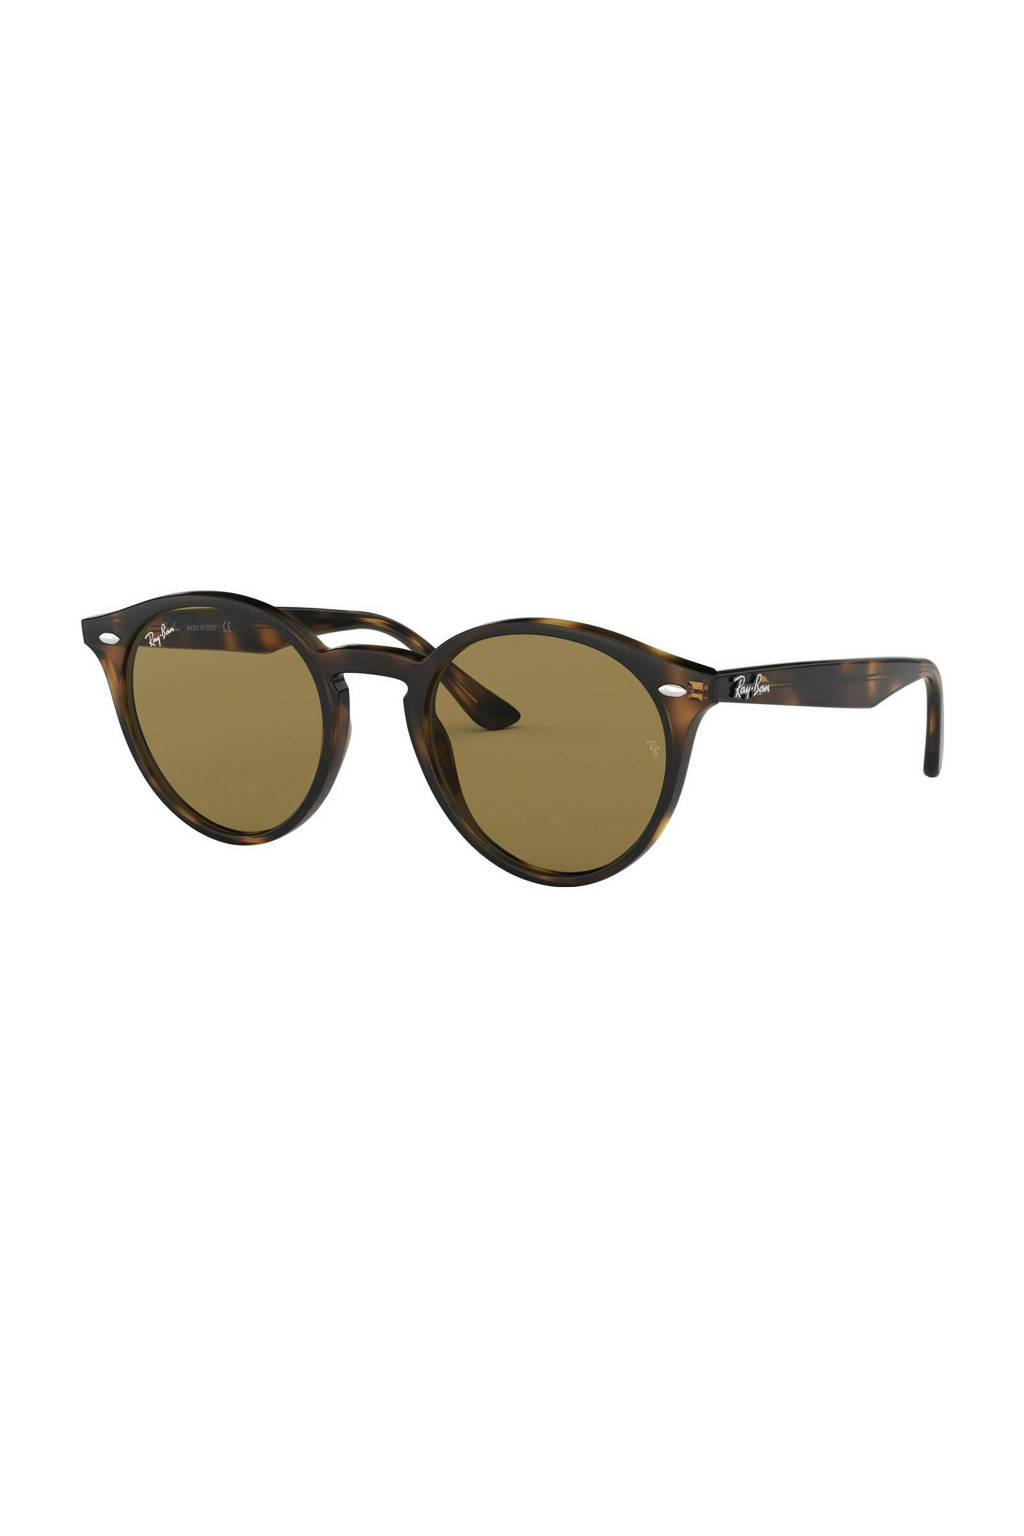 Ray-Ban zonnebril 0RB2180, Bruin